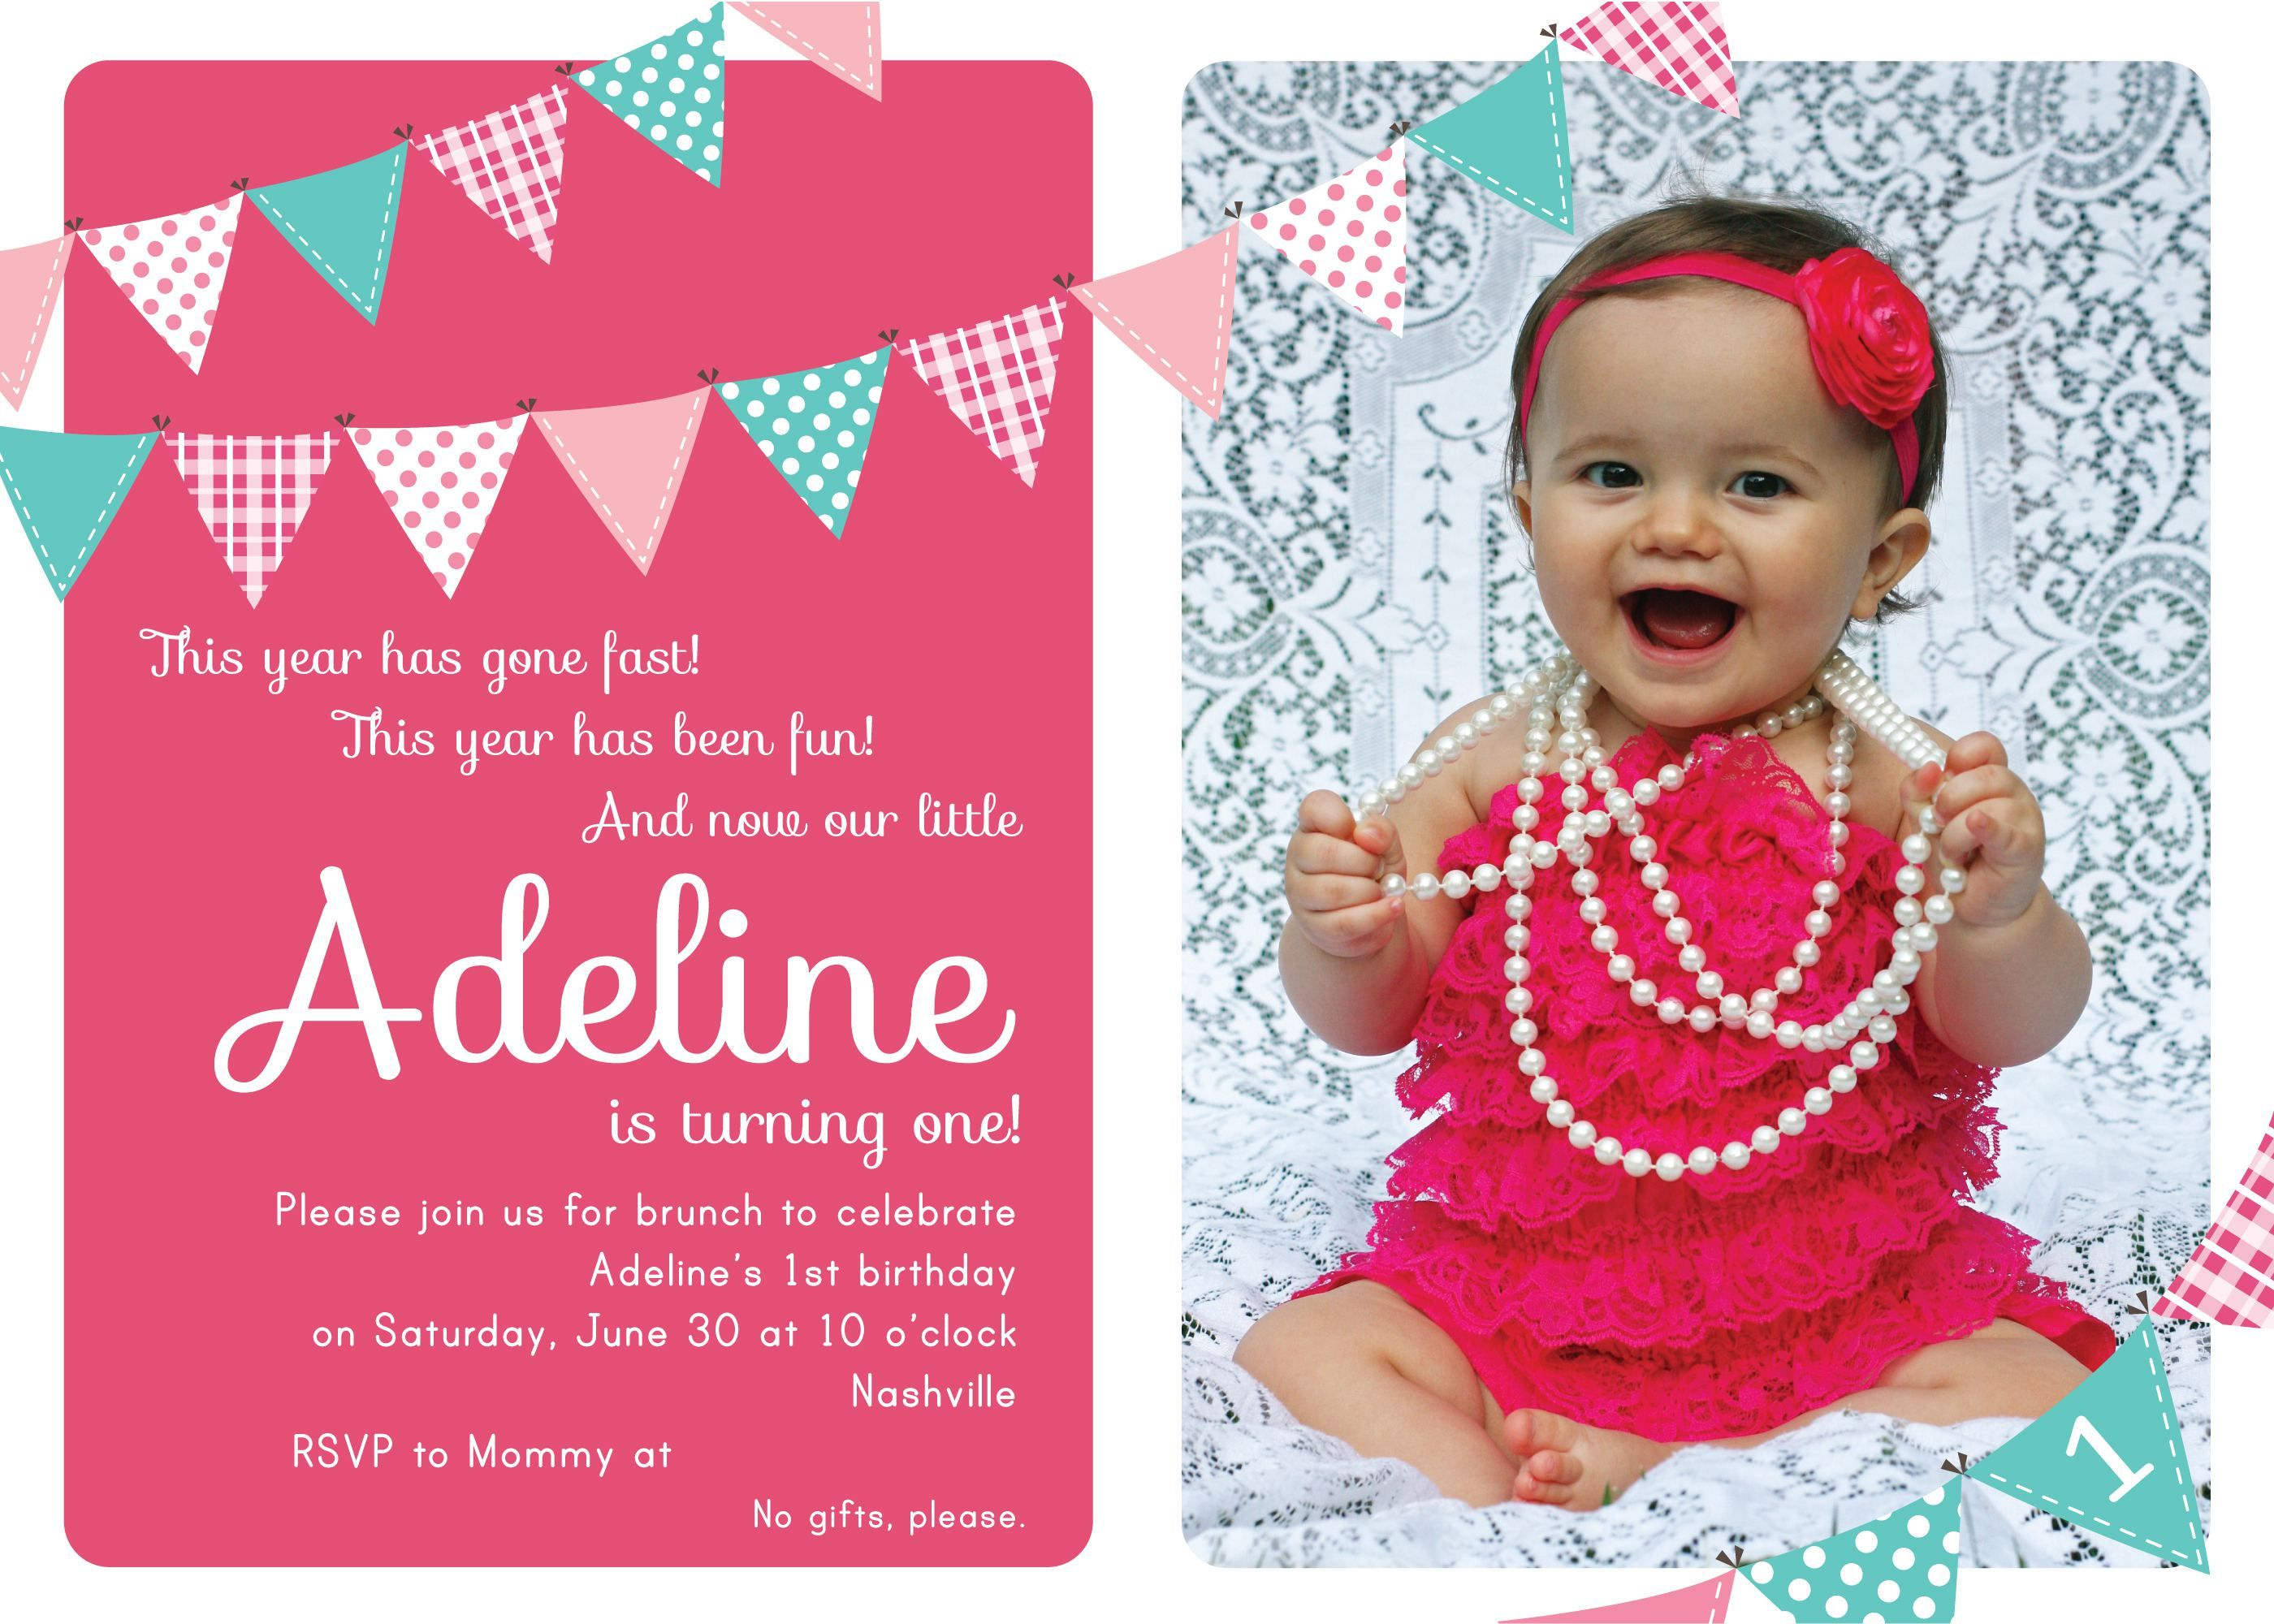 Baptisminvitationsamplewording Baptism Invitations - 1st birthday invitation wording by a baby